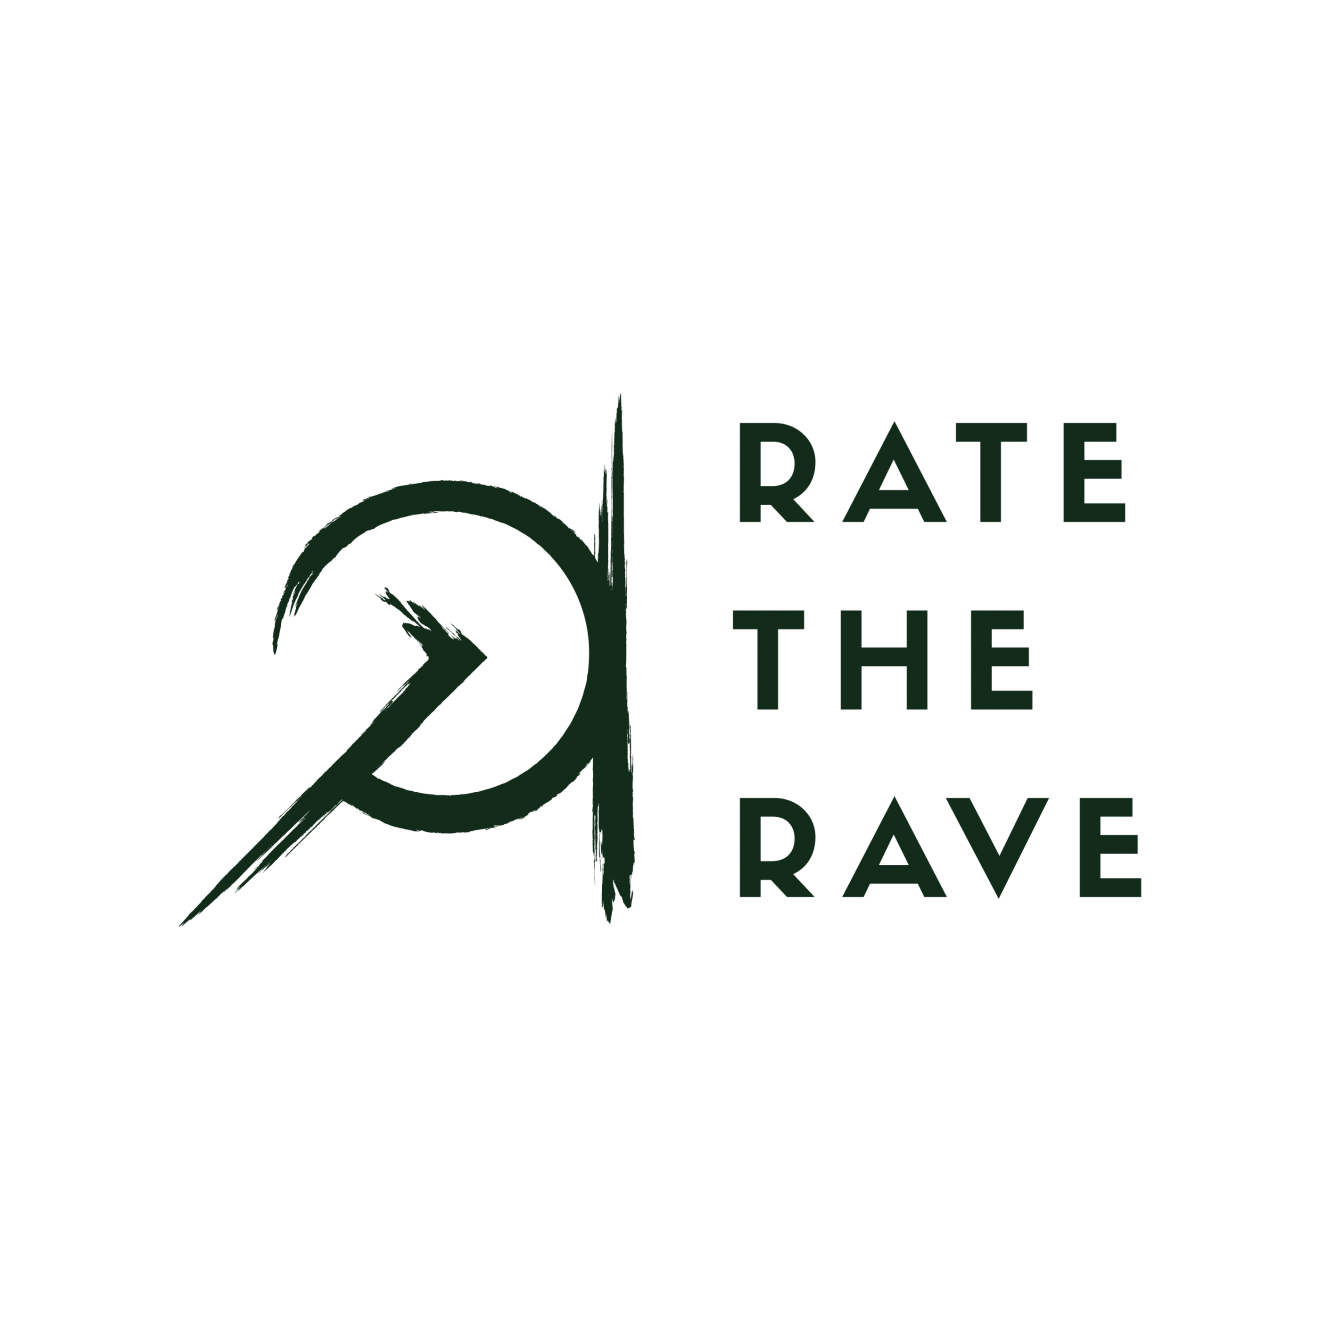 RATE THE RAVE